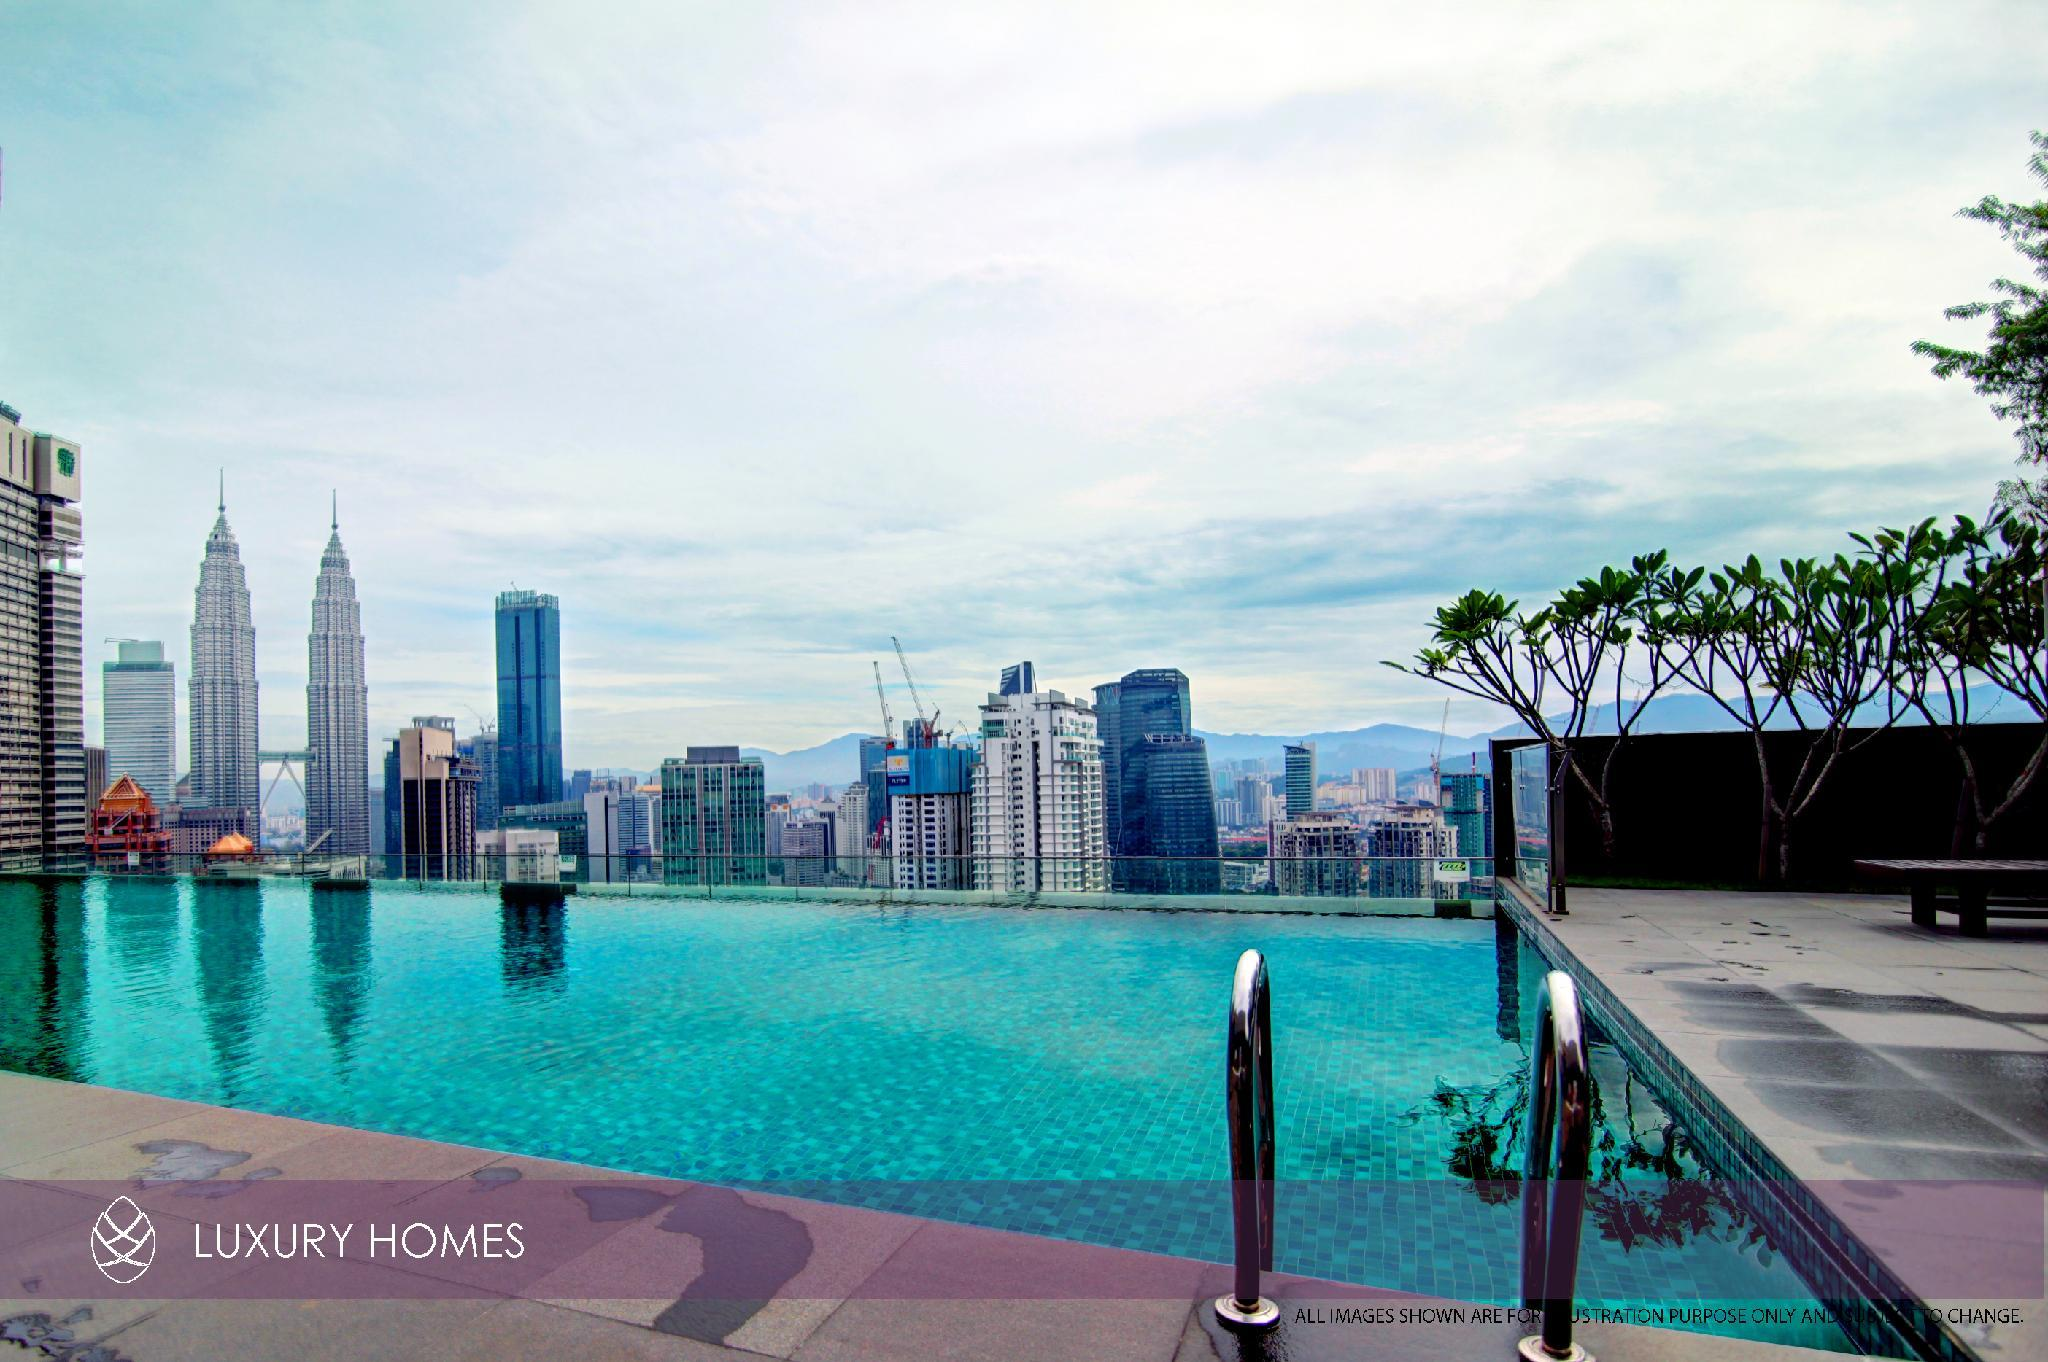 Dorsett Residence Bukit Bintang By Vale Pine Luxury Homes